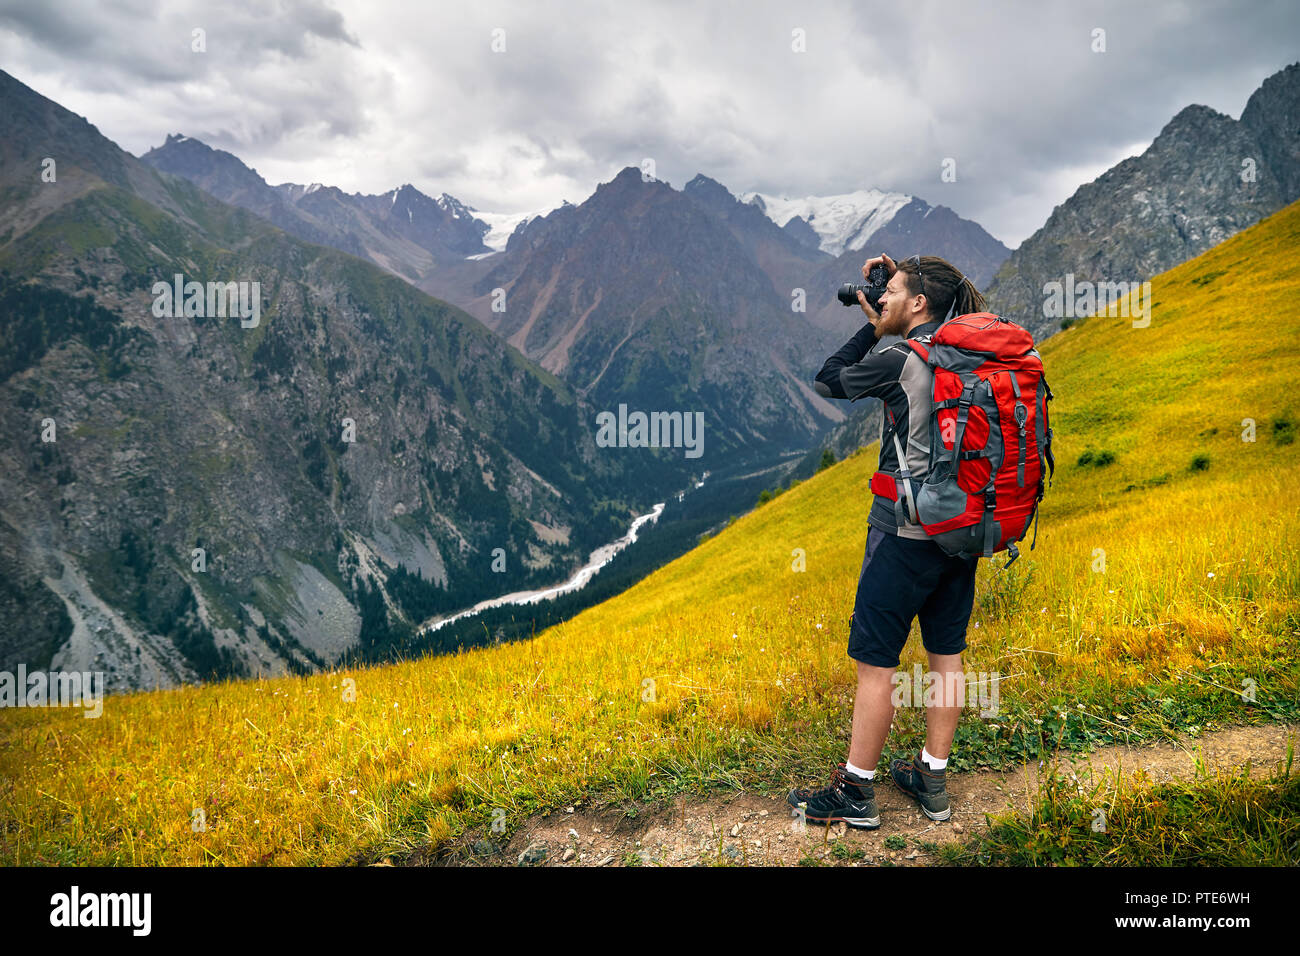 Man photographer with big backpack and camera taking photo in the mountains. Travel Lifestyle concept adventure active vacations outdoor - Stock Image